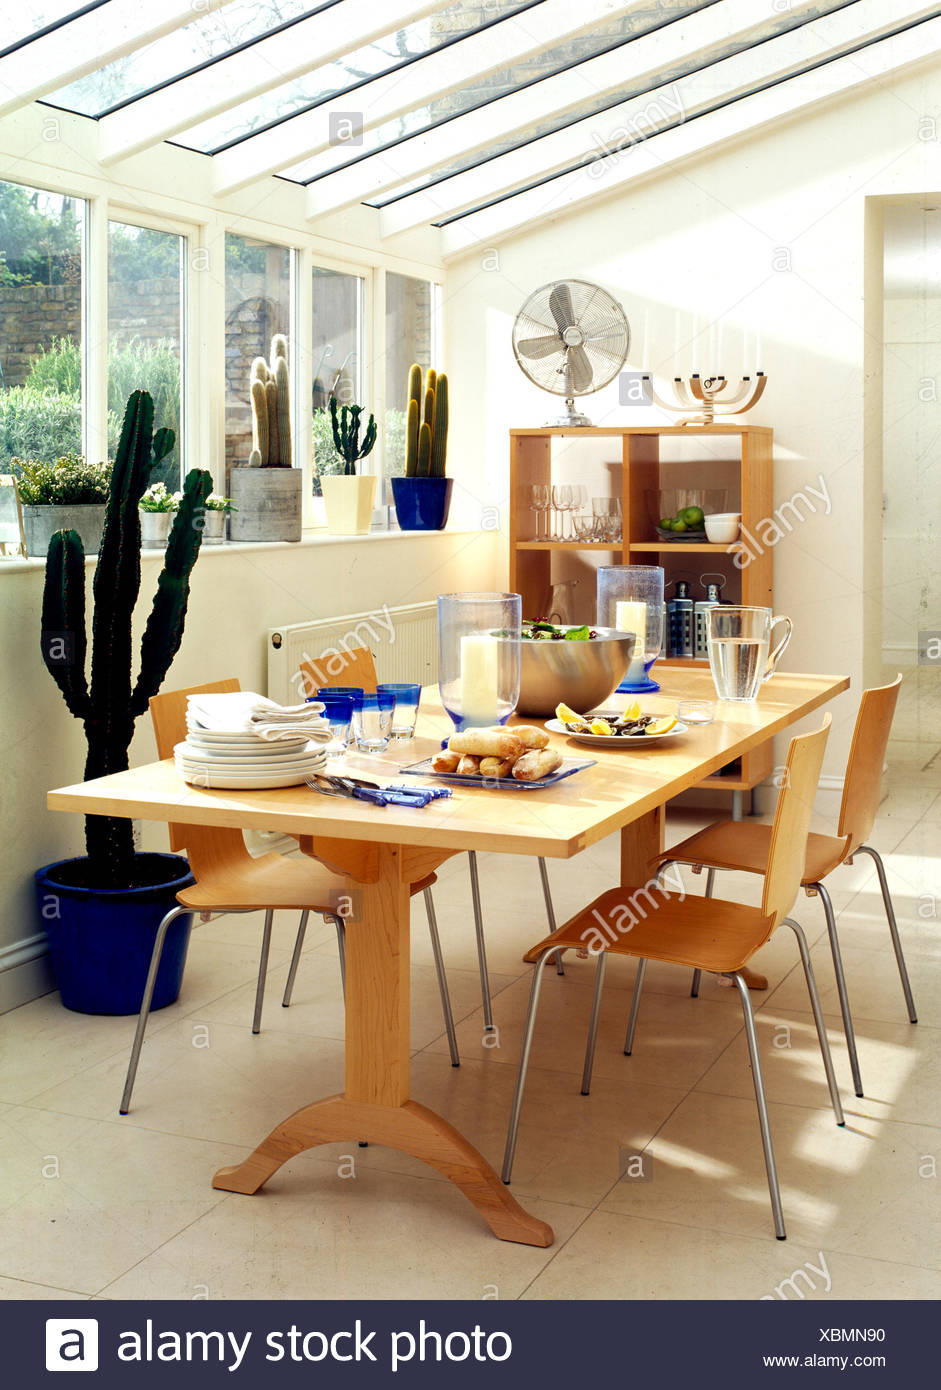 Etonnant Pale Wood Furniture And Cacti In Conservatory Used As Diningroom